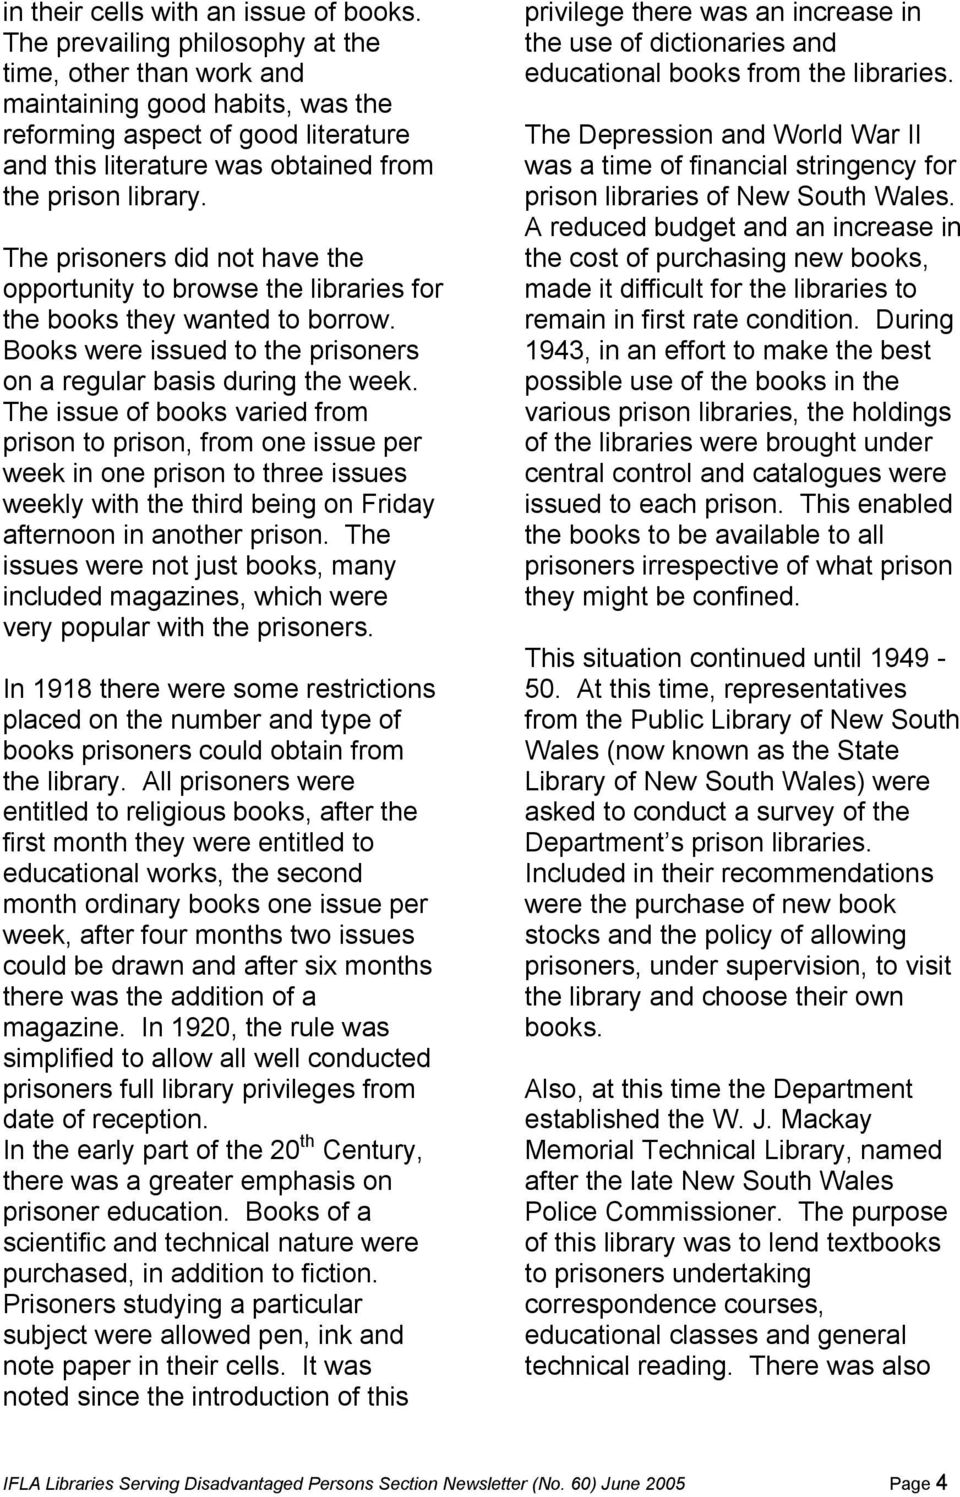 The prisoners did not have the opportunity to browse the libraries for the books they wanted to borrow. Books were issued to the prisoners on a regular basis during the week.